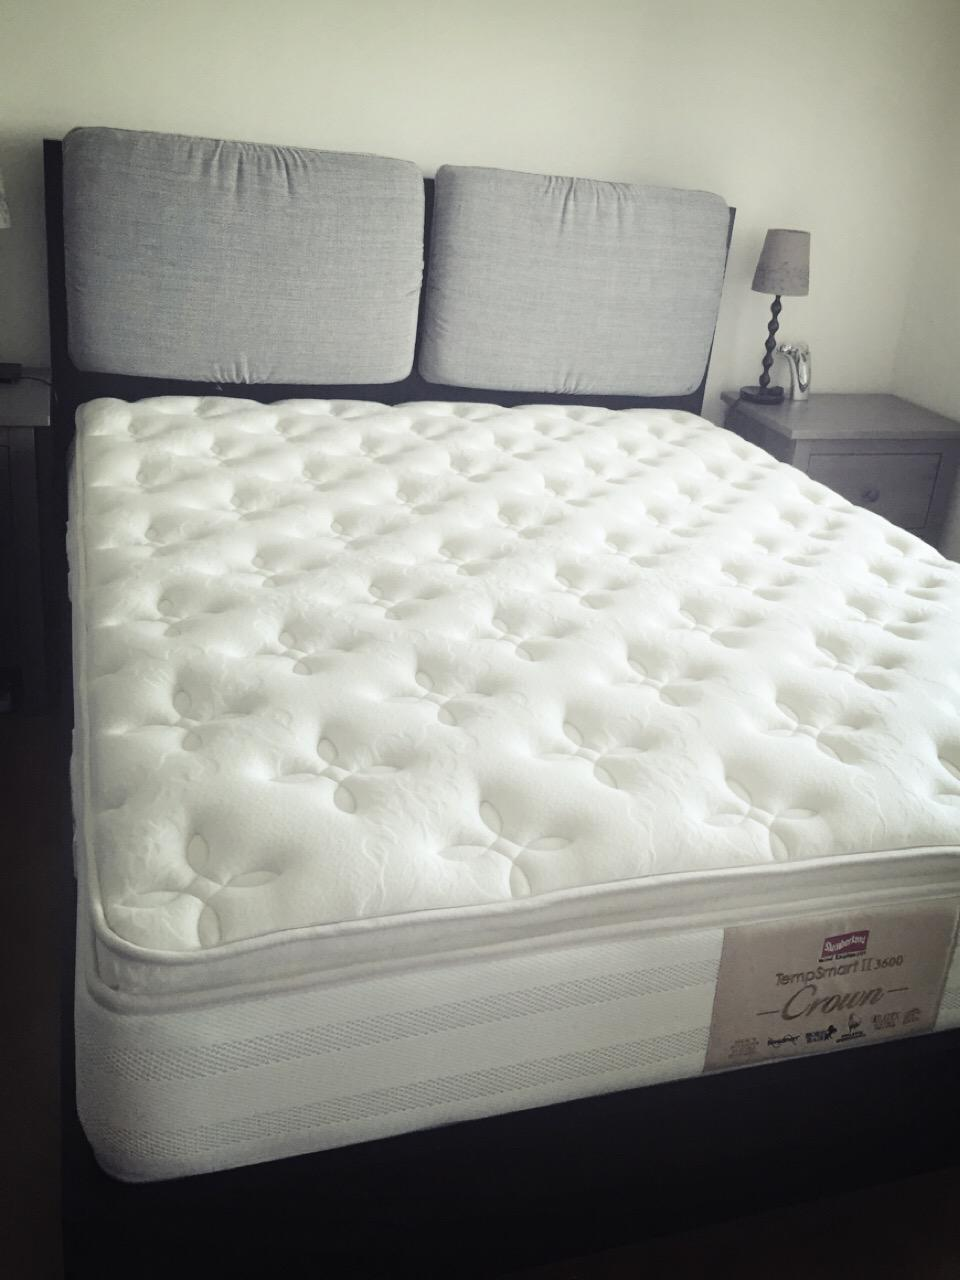 Brand New Slumberland Tempsmart Mattress 2 Week Old